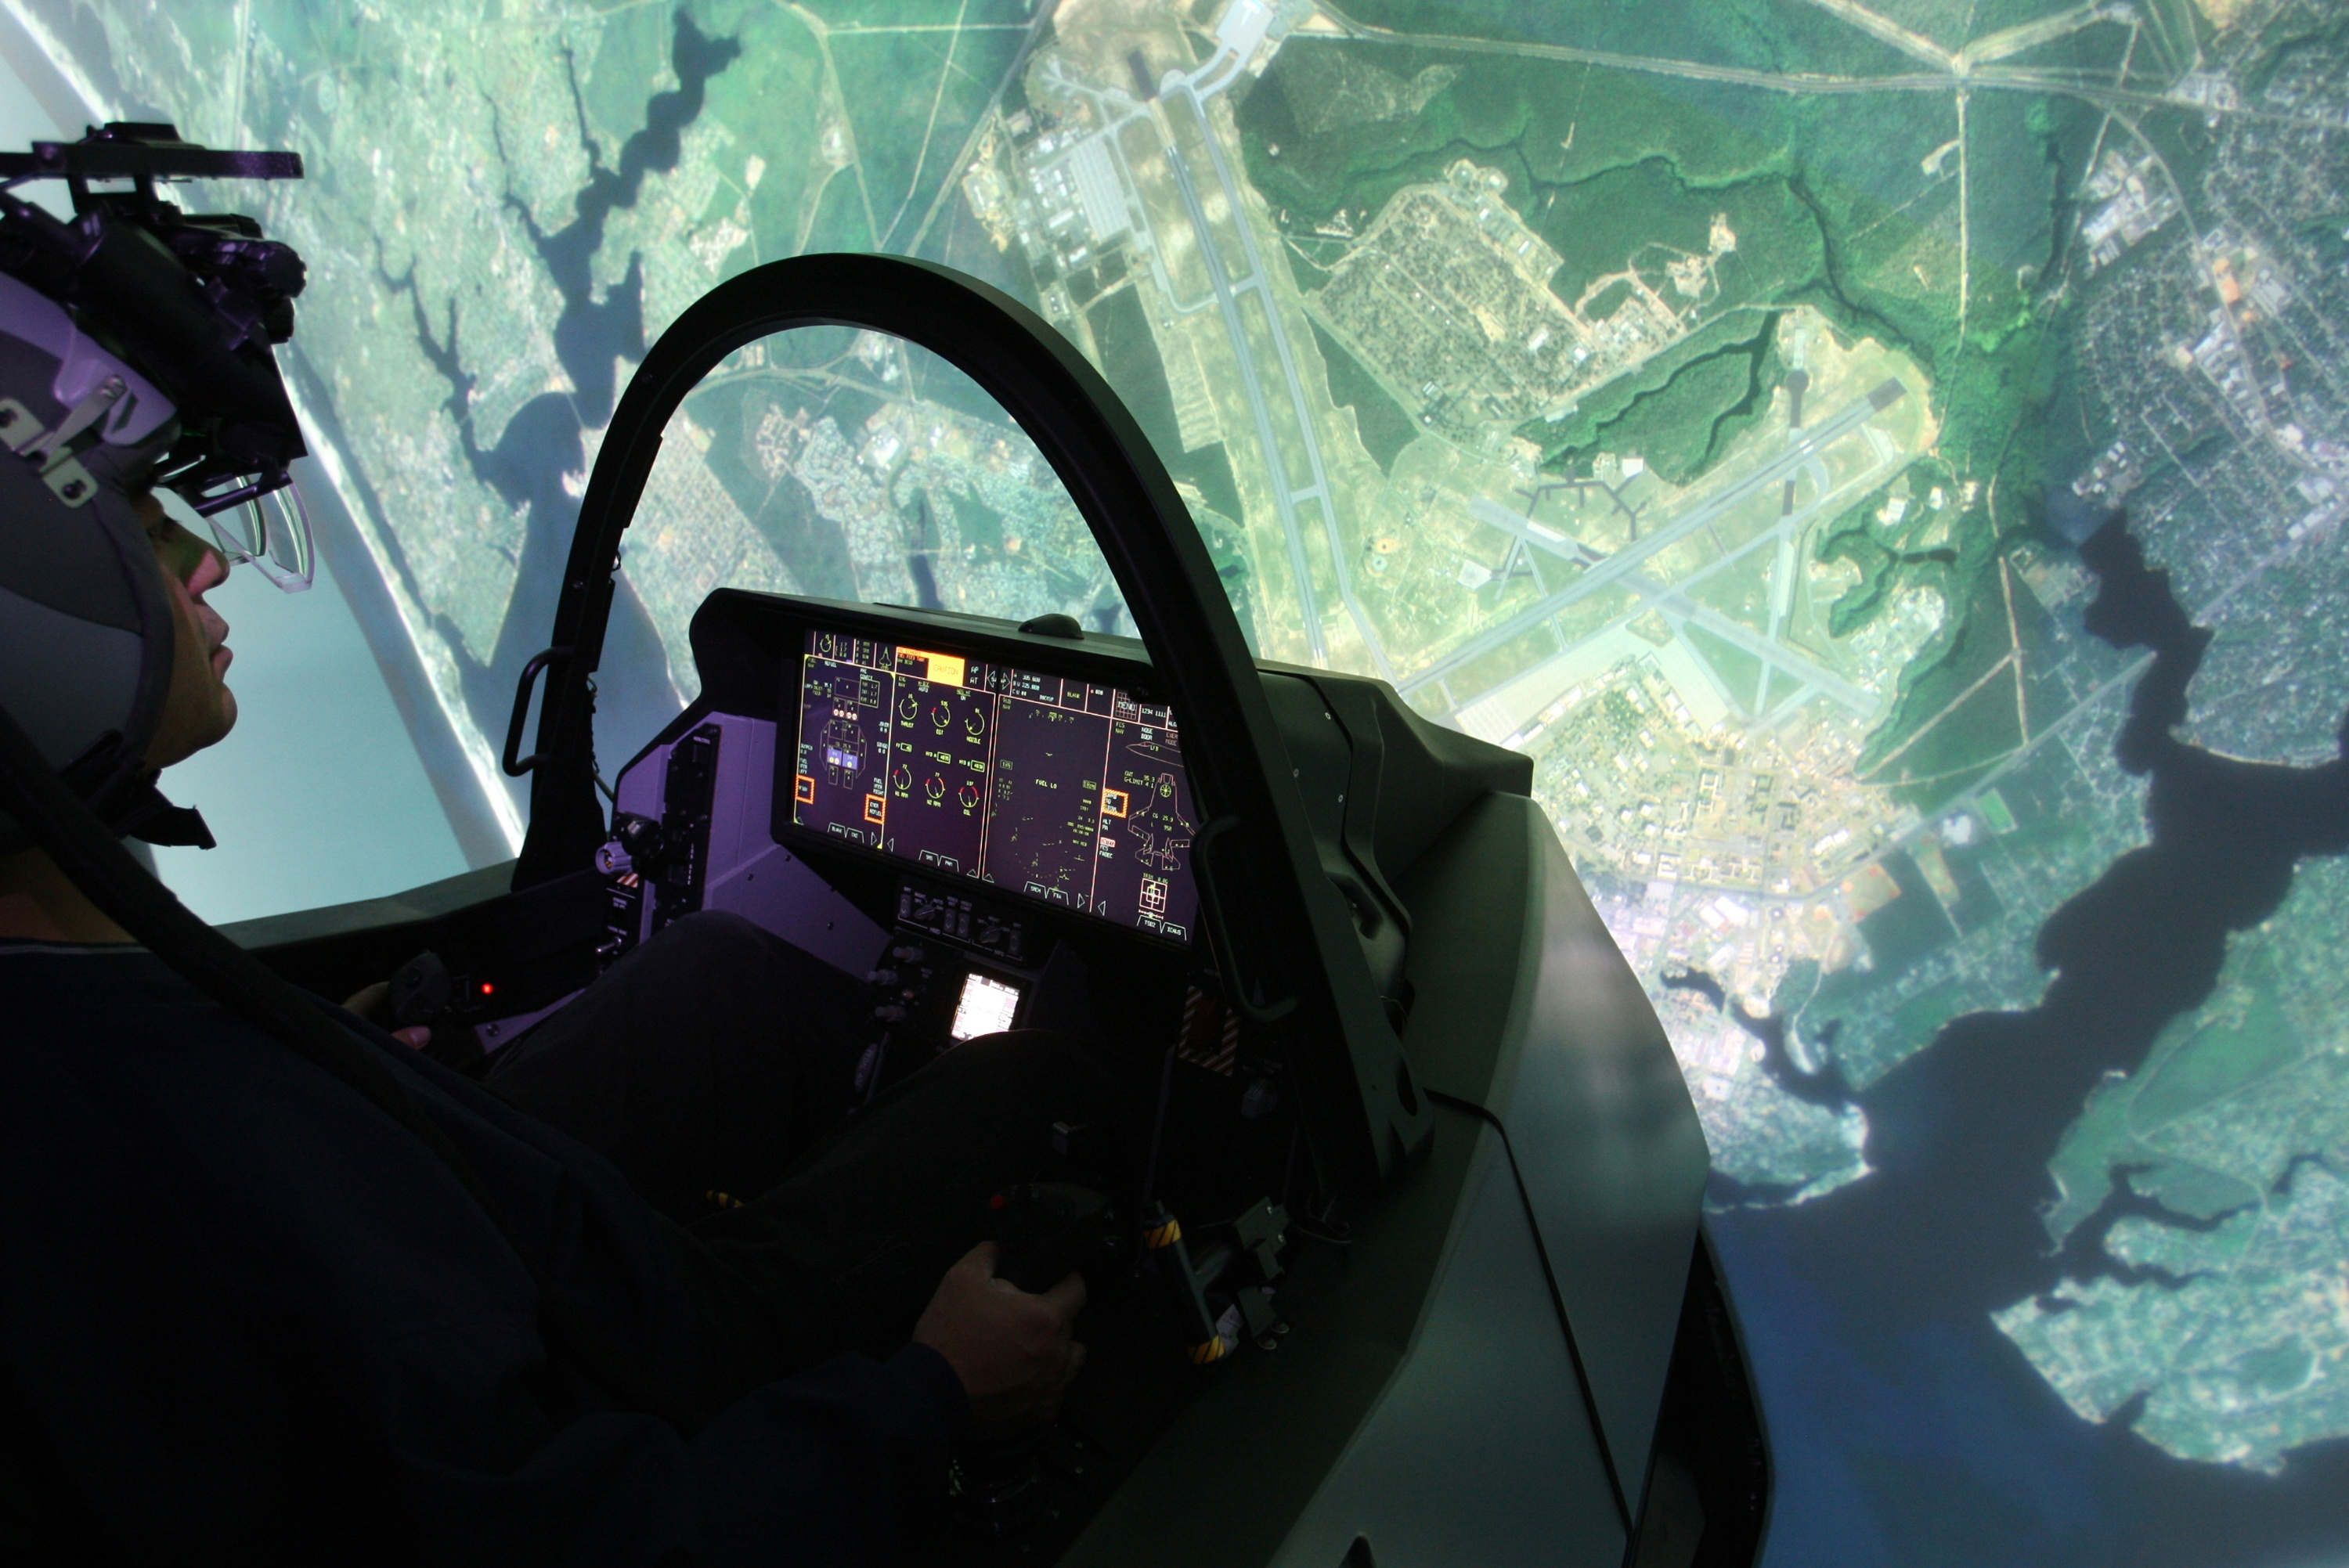 Orlando's MS&T ecosystem attracts billions in simulation contracts